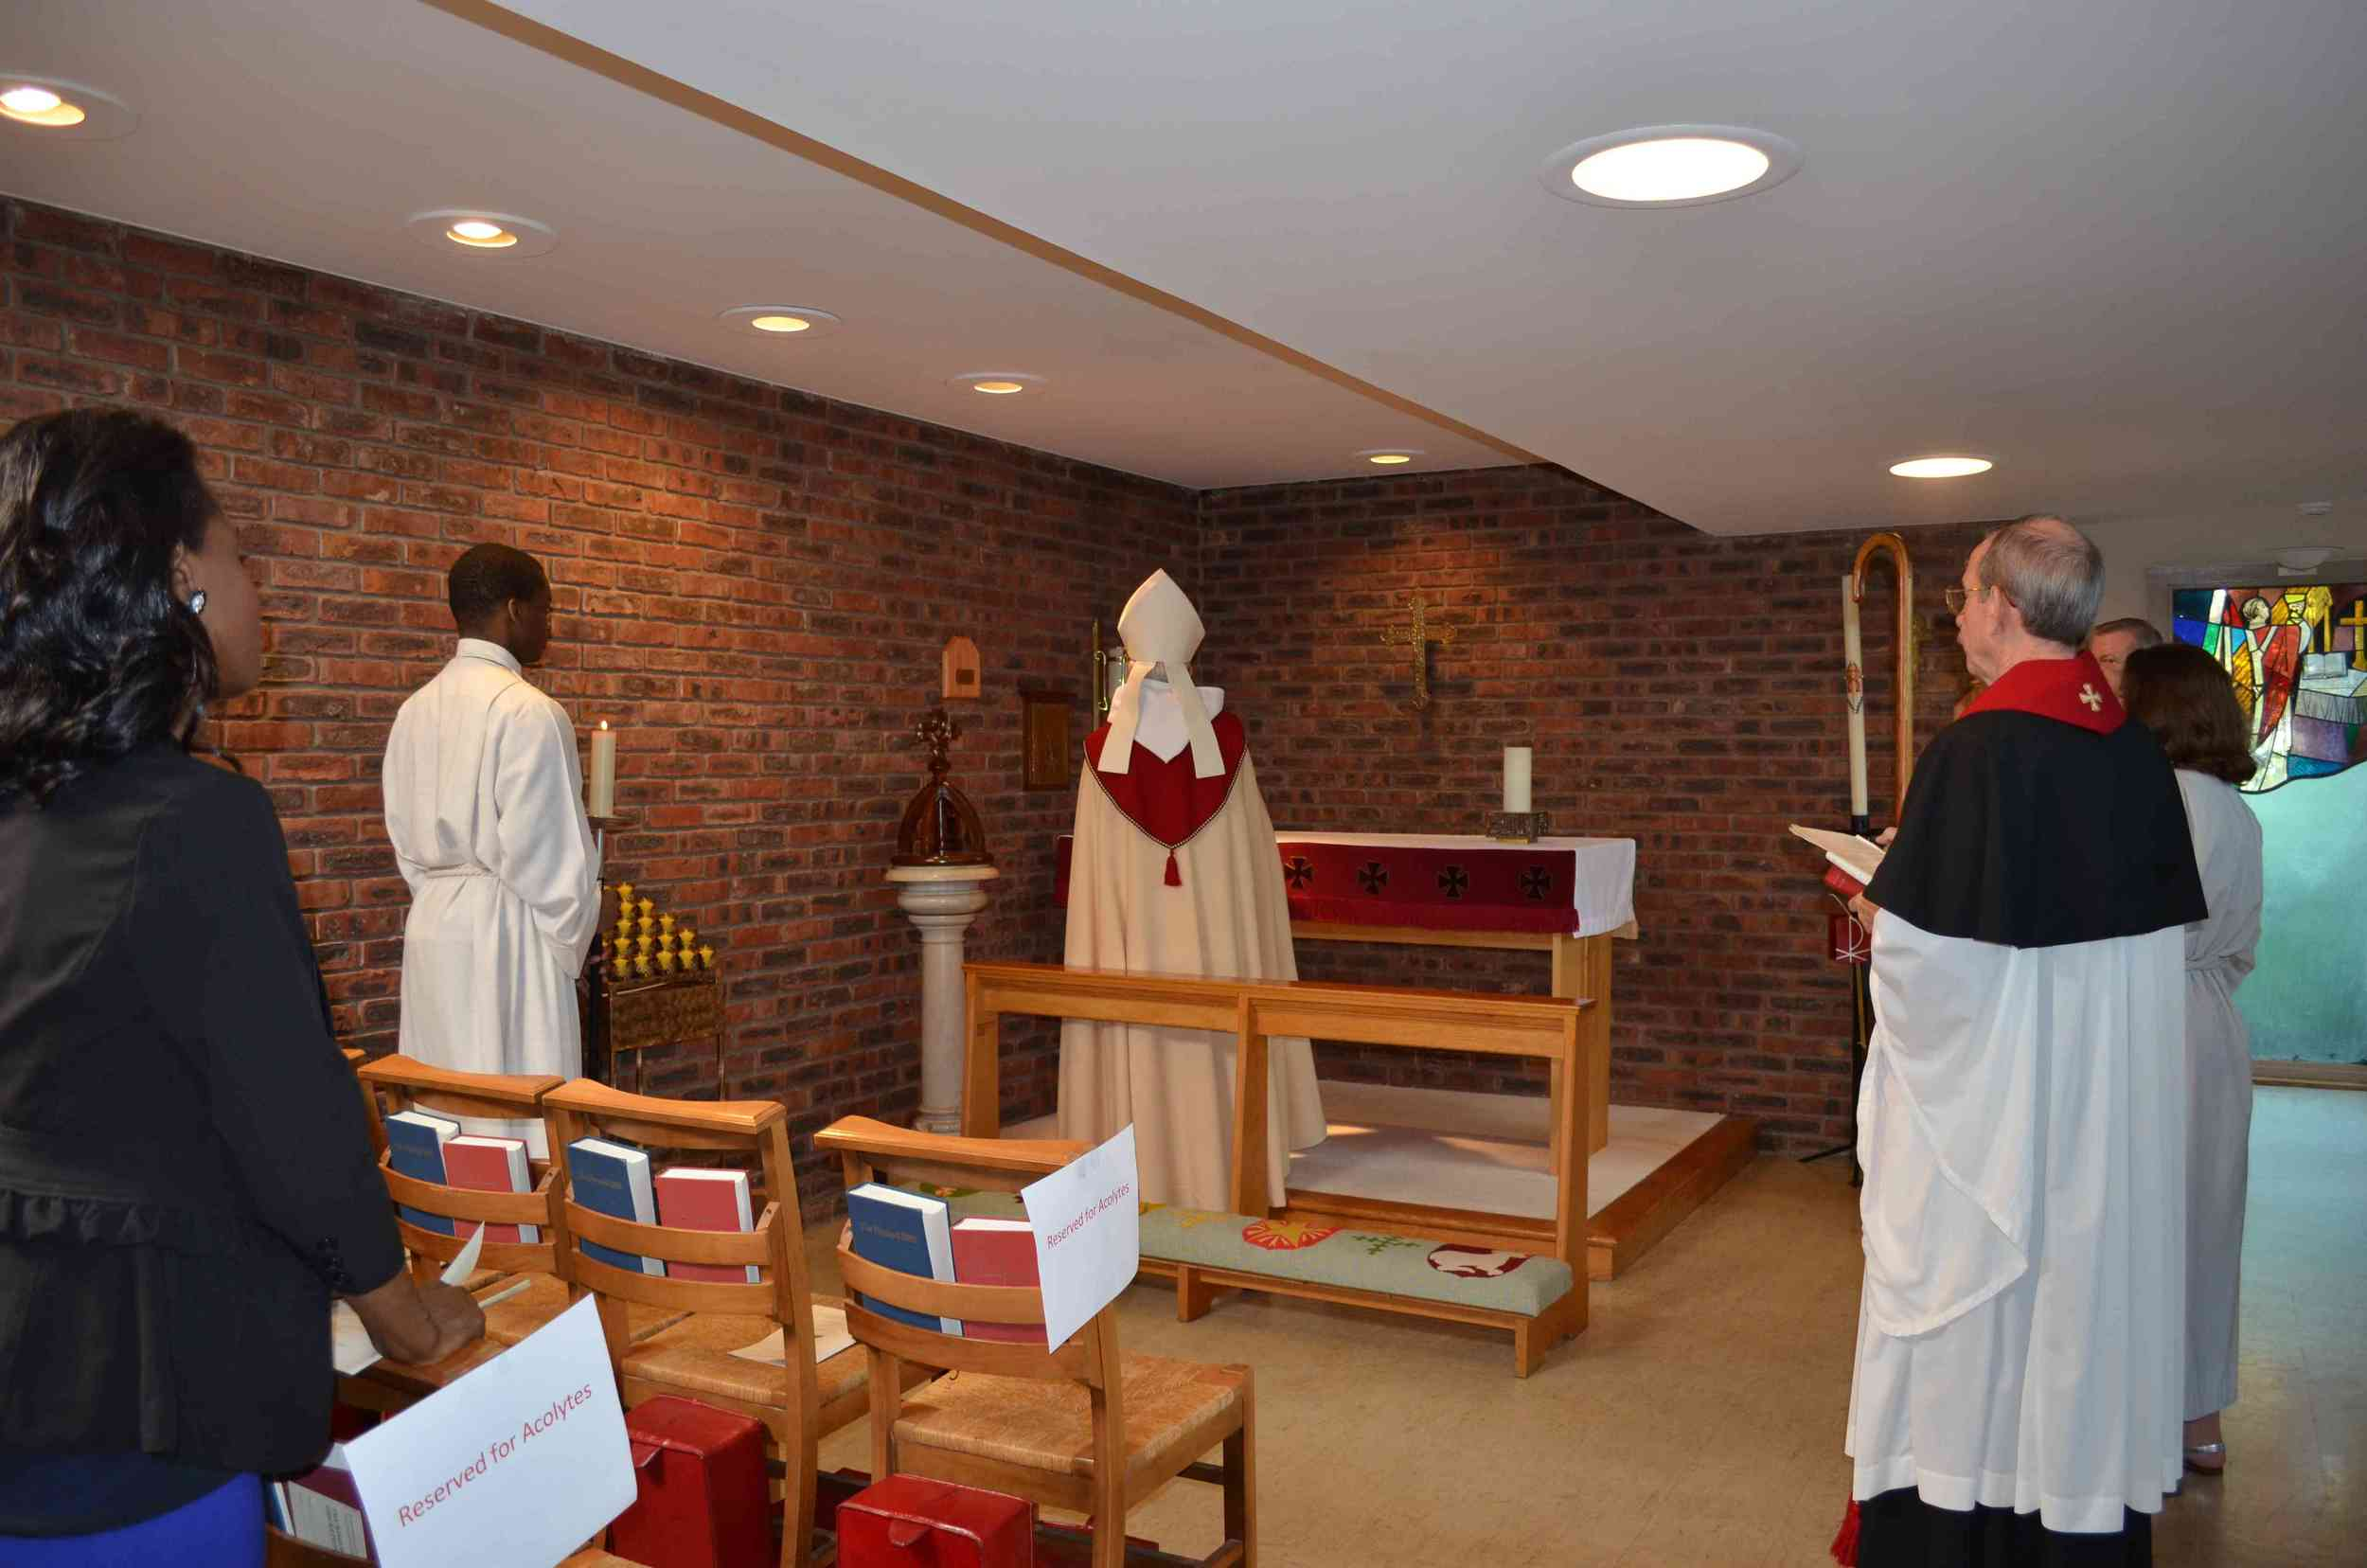 The fair linen for the chapel altar was given in thanksgiving for the Gutterman and Kim children